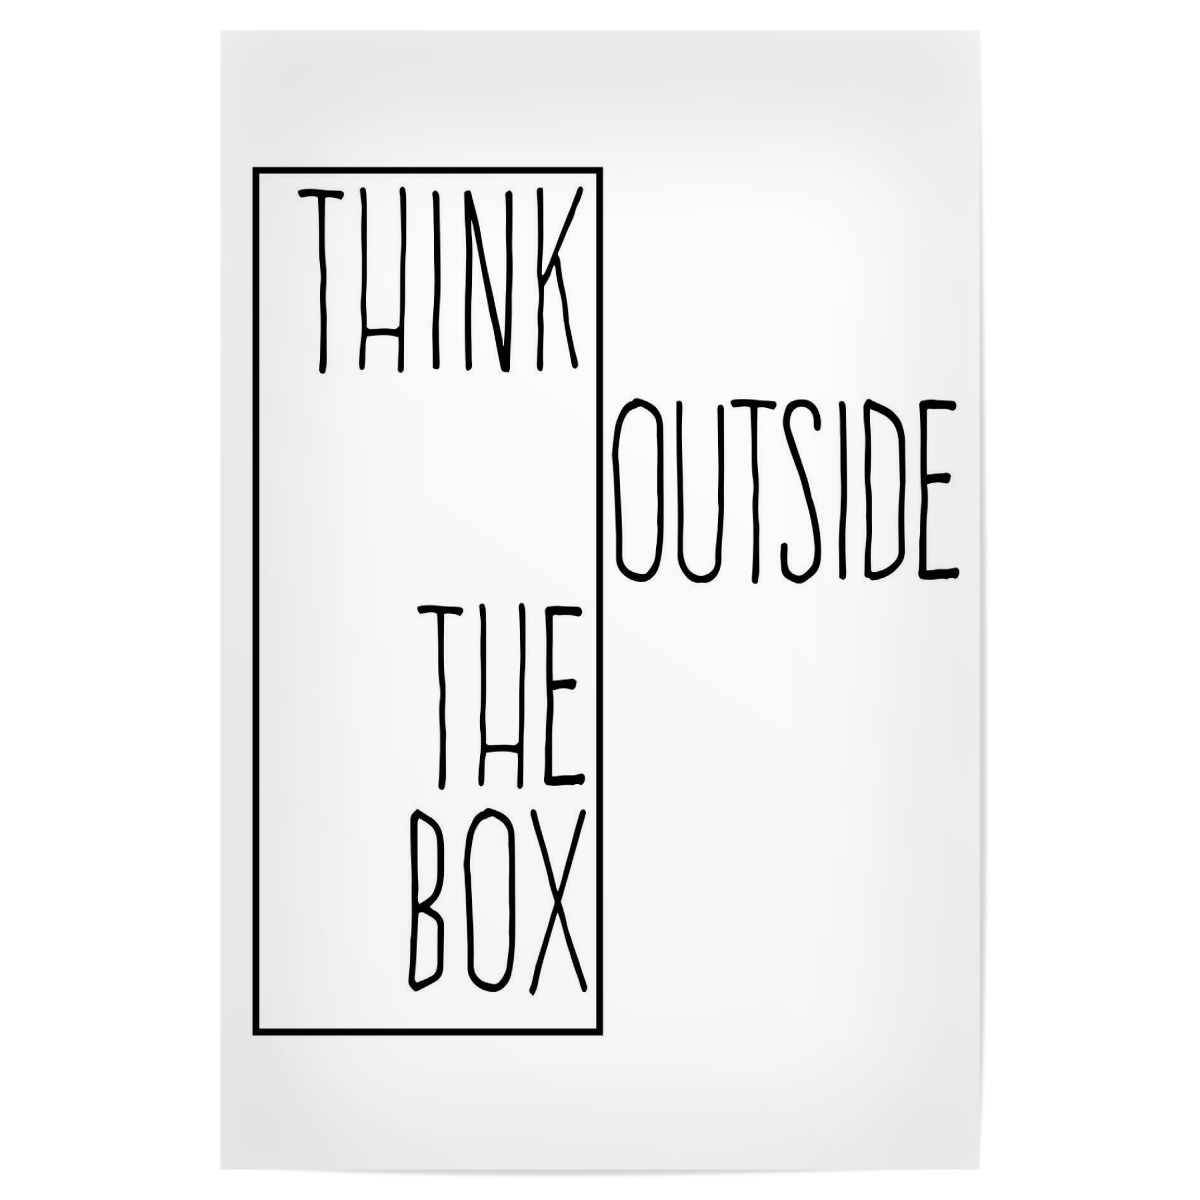 Purchase The Think Outside Of The Box As A Poster At Artboxone